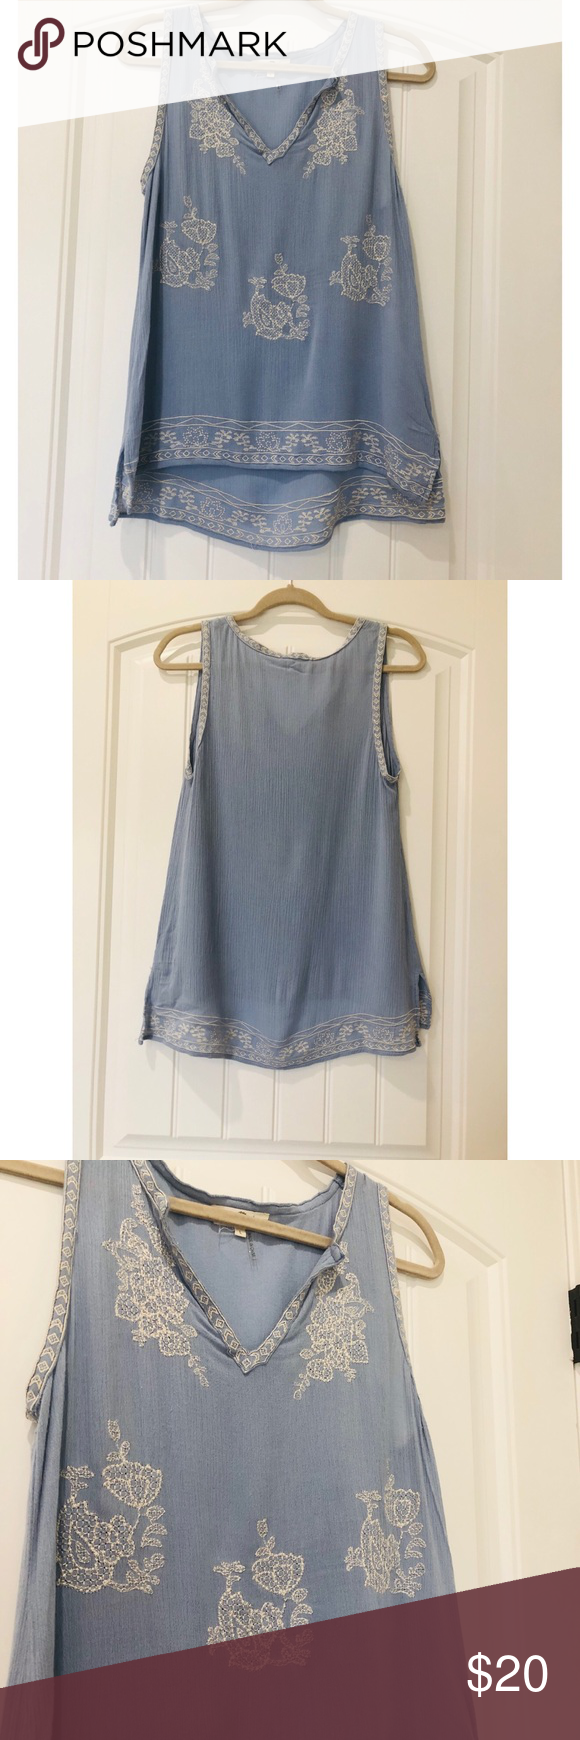 1f941342d0 Anthropologie ENTRO boho blue embroidered top Great condition this entro  top is a SIZE L Anthropologie Tops